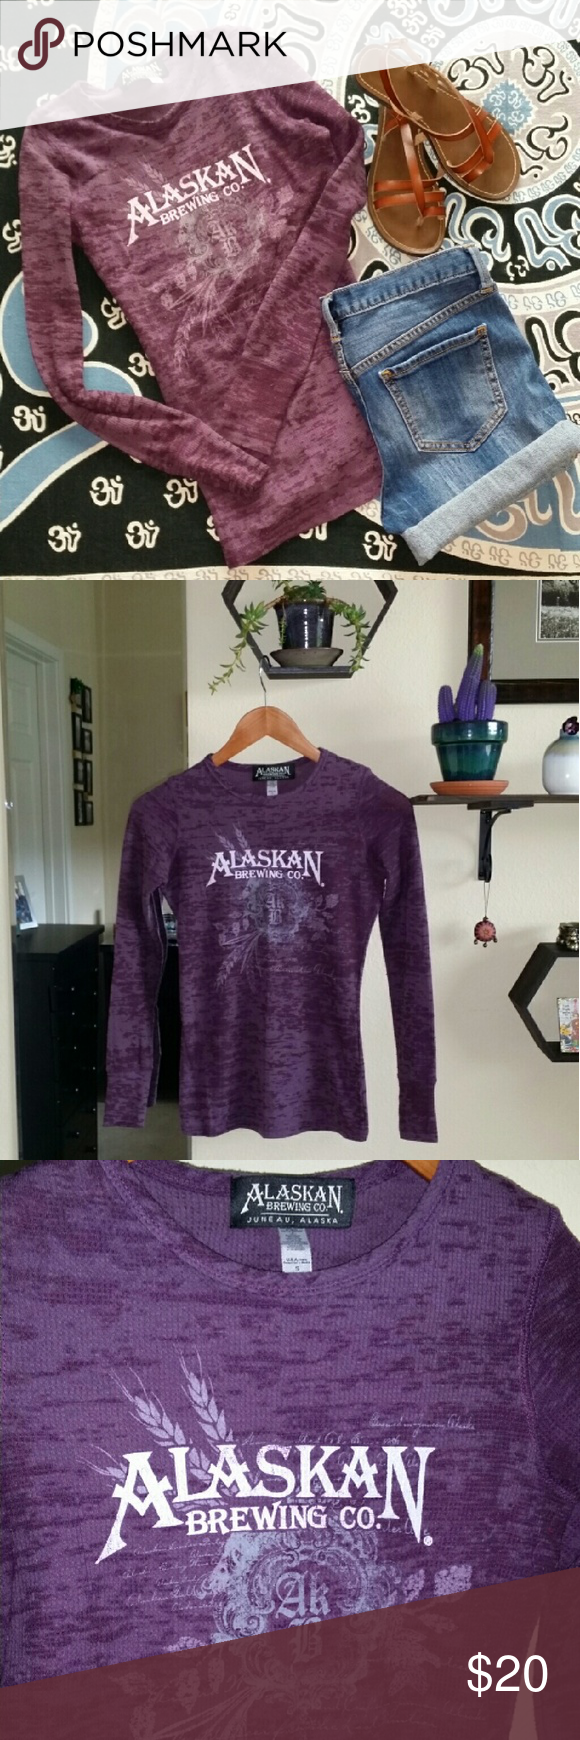 Alaskan Brewing Co. Thermal Shirt Alaskan Brewing Co.  Juneau, Alaska thermal long sleeve t-shirt. Only worn a few times. Too small on me now. Size small but runs xsmall-small. Jean shorts available in closet as well. Alaskan Brewing Co. Tops Tees - Long Sleeve